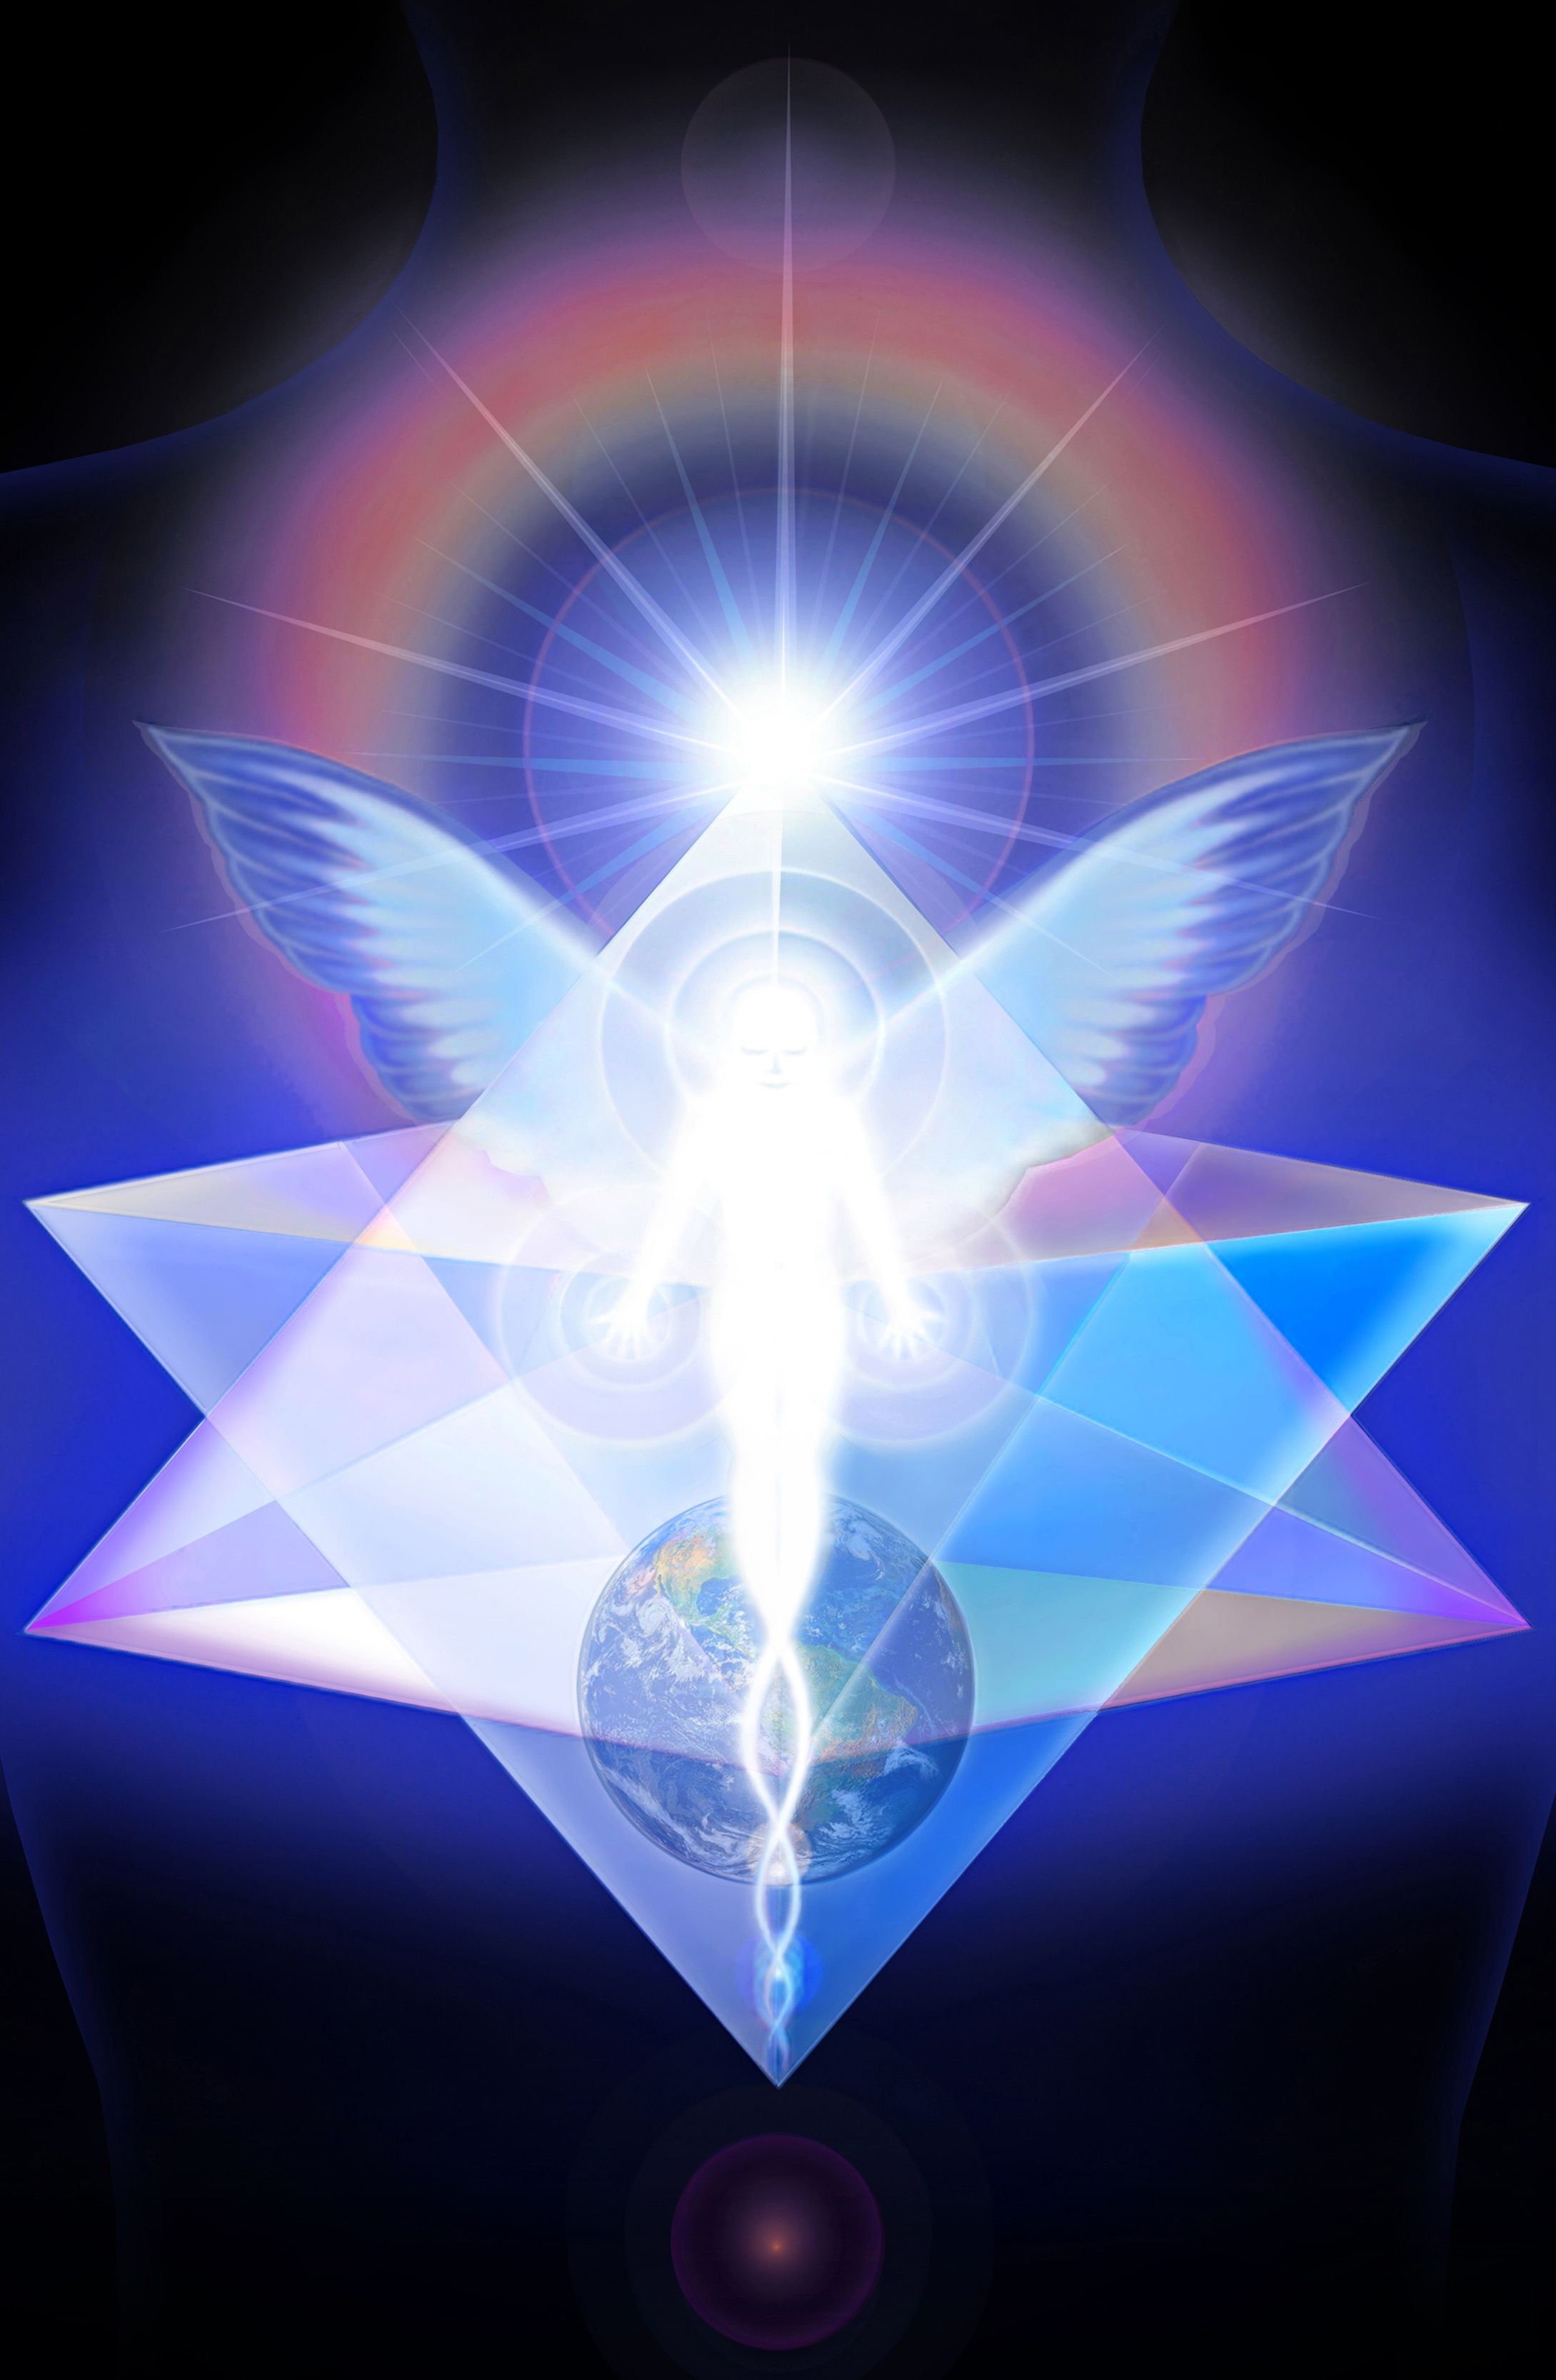 Discussion on this topic: The Ultimate Guide To Merkaba Meditation, the-ultimate-guide-to-merkaba-meditation/